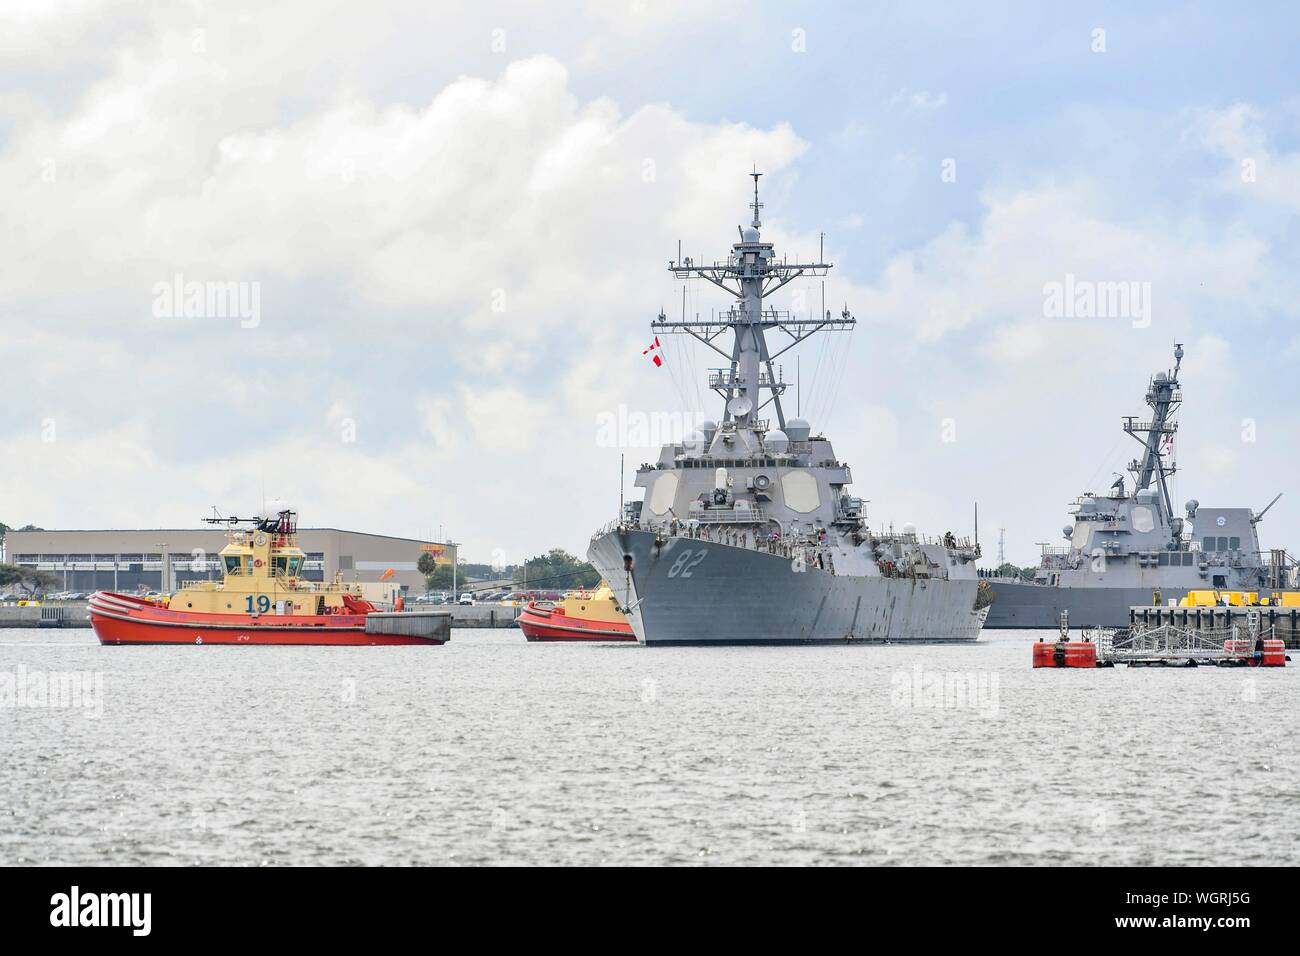 190830-N-DA434-100  JACKSONVILLE, Fla. (Aug. 30, 2019) The Arleigh Burke-class guided-missile destroyer USS Lassen (DDG 82) gets underway from Naval Station Mayport as Commander, U.S. 4th Fleet orders all U.S. Navy ships homeported in the area to sortie ahead of Hurricane Dorian, which is forecasted to bring high winds and heavy rain to the East Coast. Ships are being directed to areas in the Atlantic where they are best postured for storm avoidance. (U.S. Navy photo by Mass Communication Specialist 3rd Class Alana Langdon/Released) Stock Photo